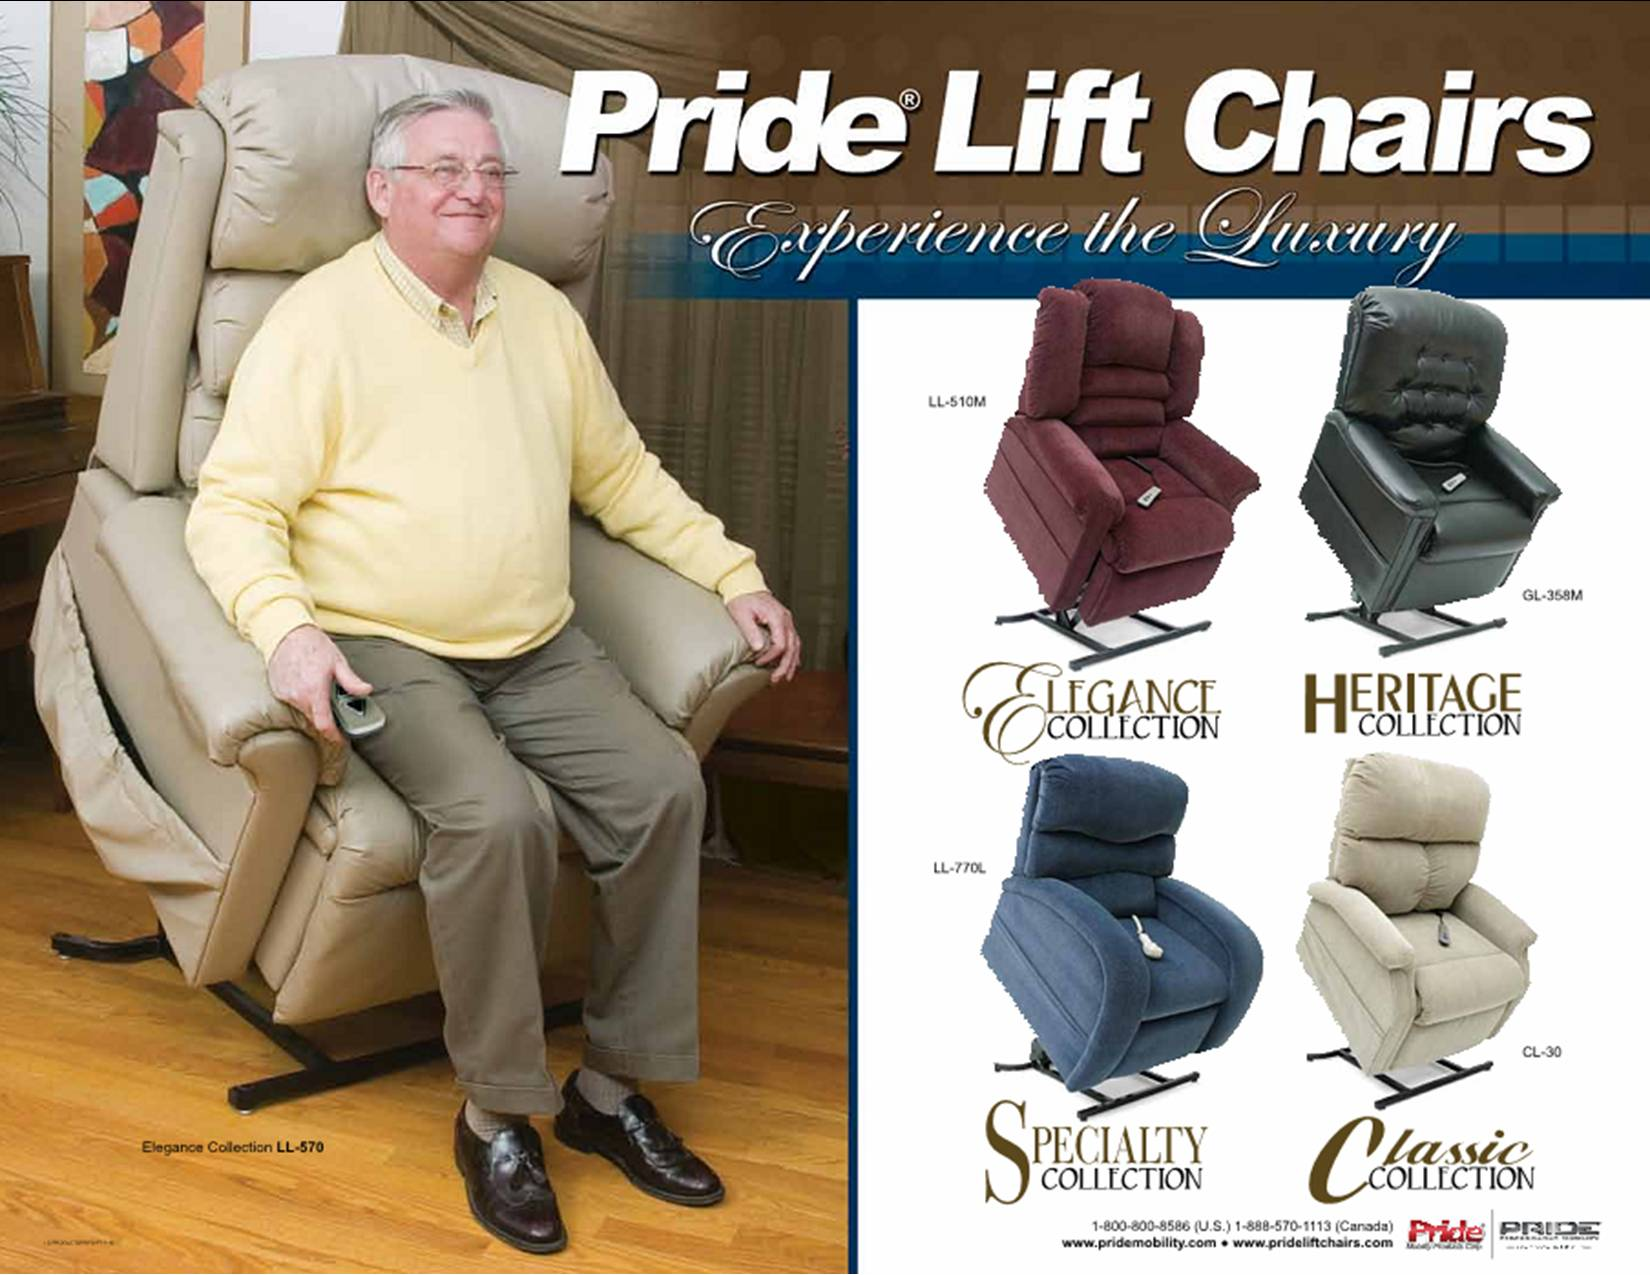 Pride lift chairs logo - Come To Our Showroom For A Demonstration